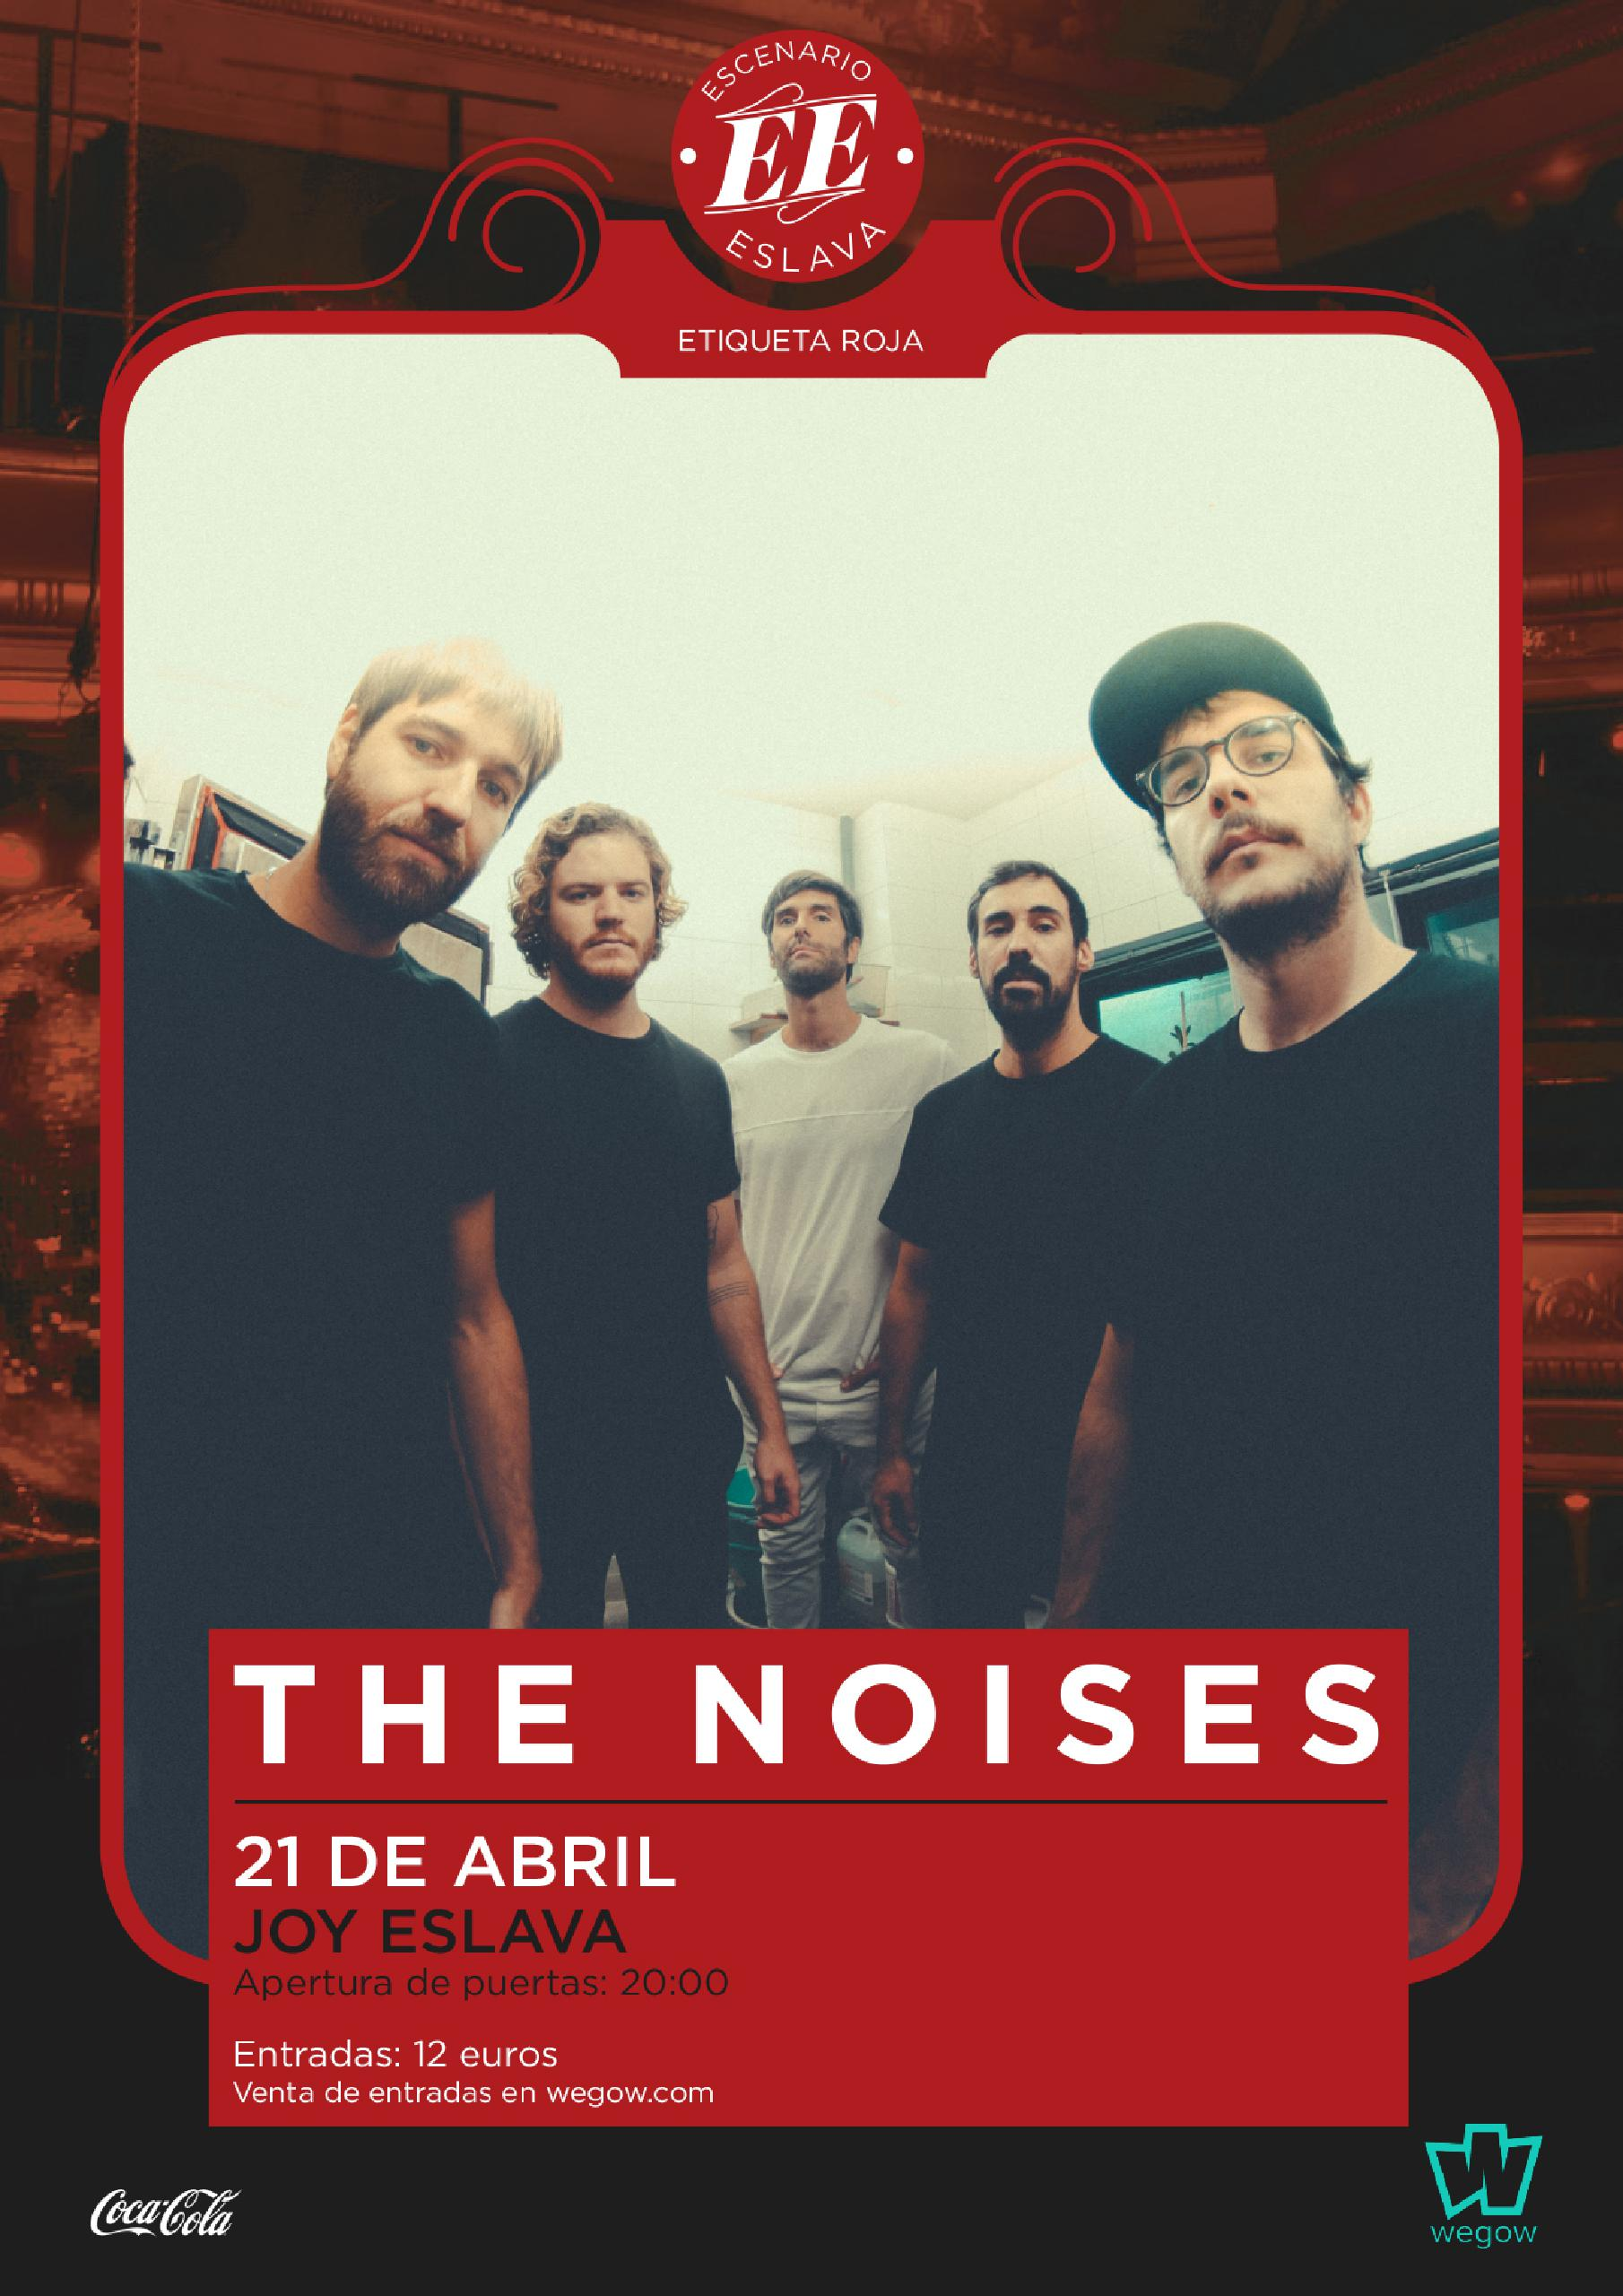 Escenario Eslava presenta a The Noises en Madrid